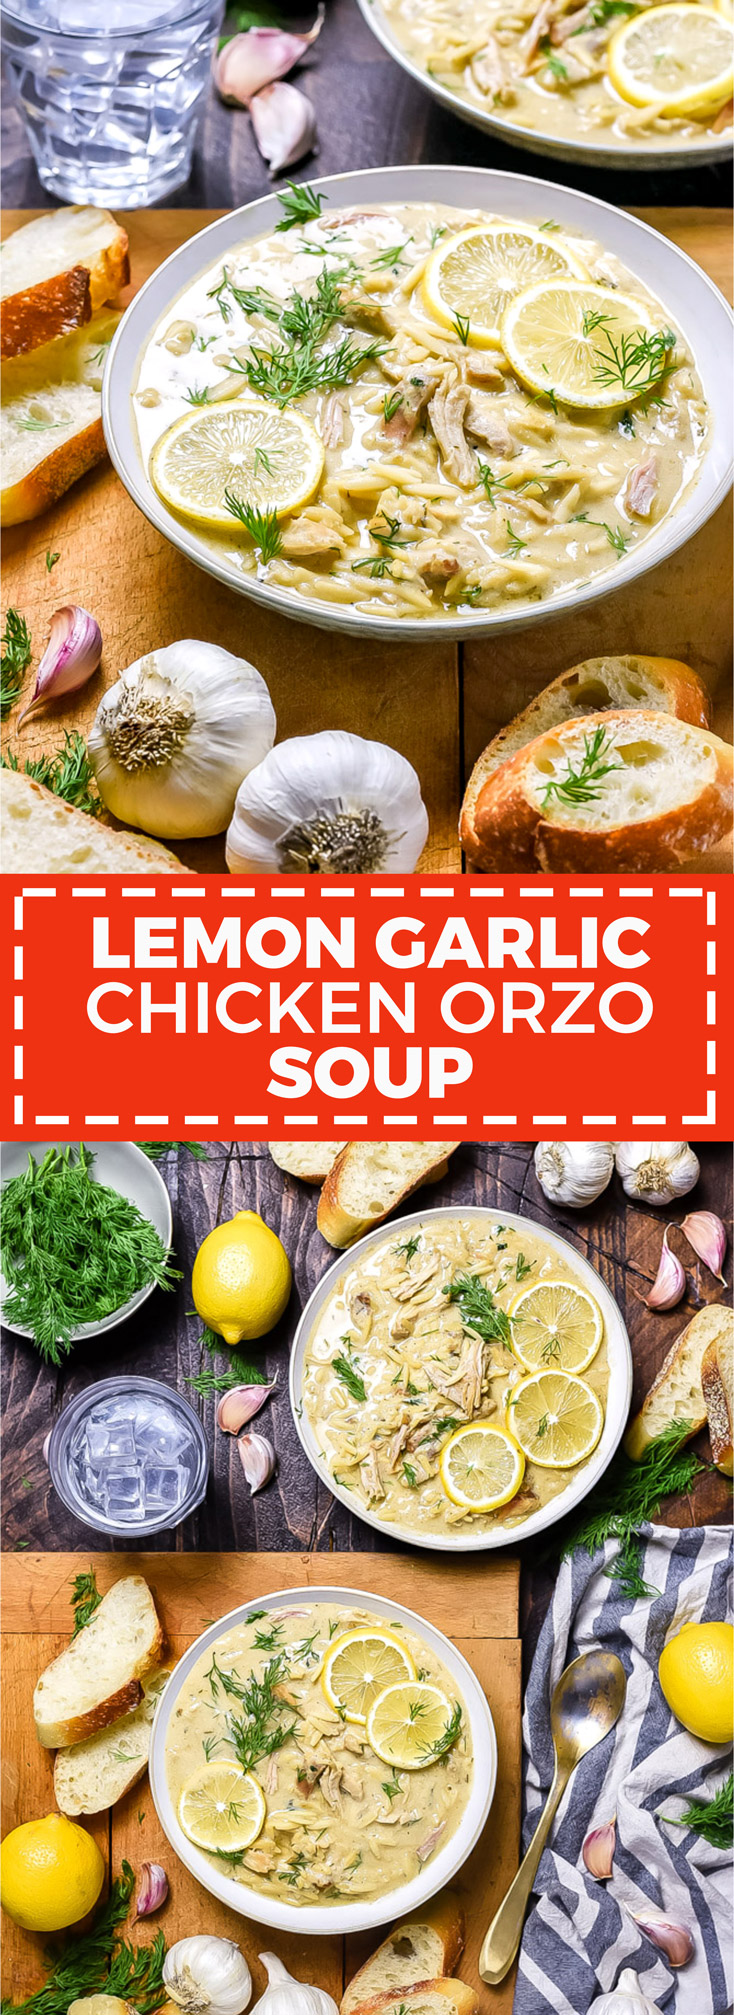 """Lemon Garlic Chicken Orzo Soup. Inspired by Greek """"Avgolemono"""", this recipe is thickened with a mixture of lemon juice, pureed garlic, and egg to create a flavor-packed, citrusy, velvety soup. 